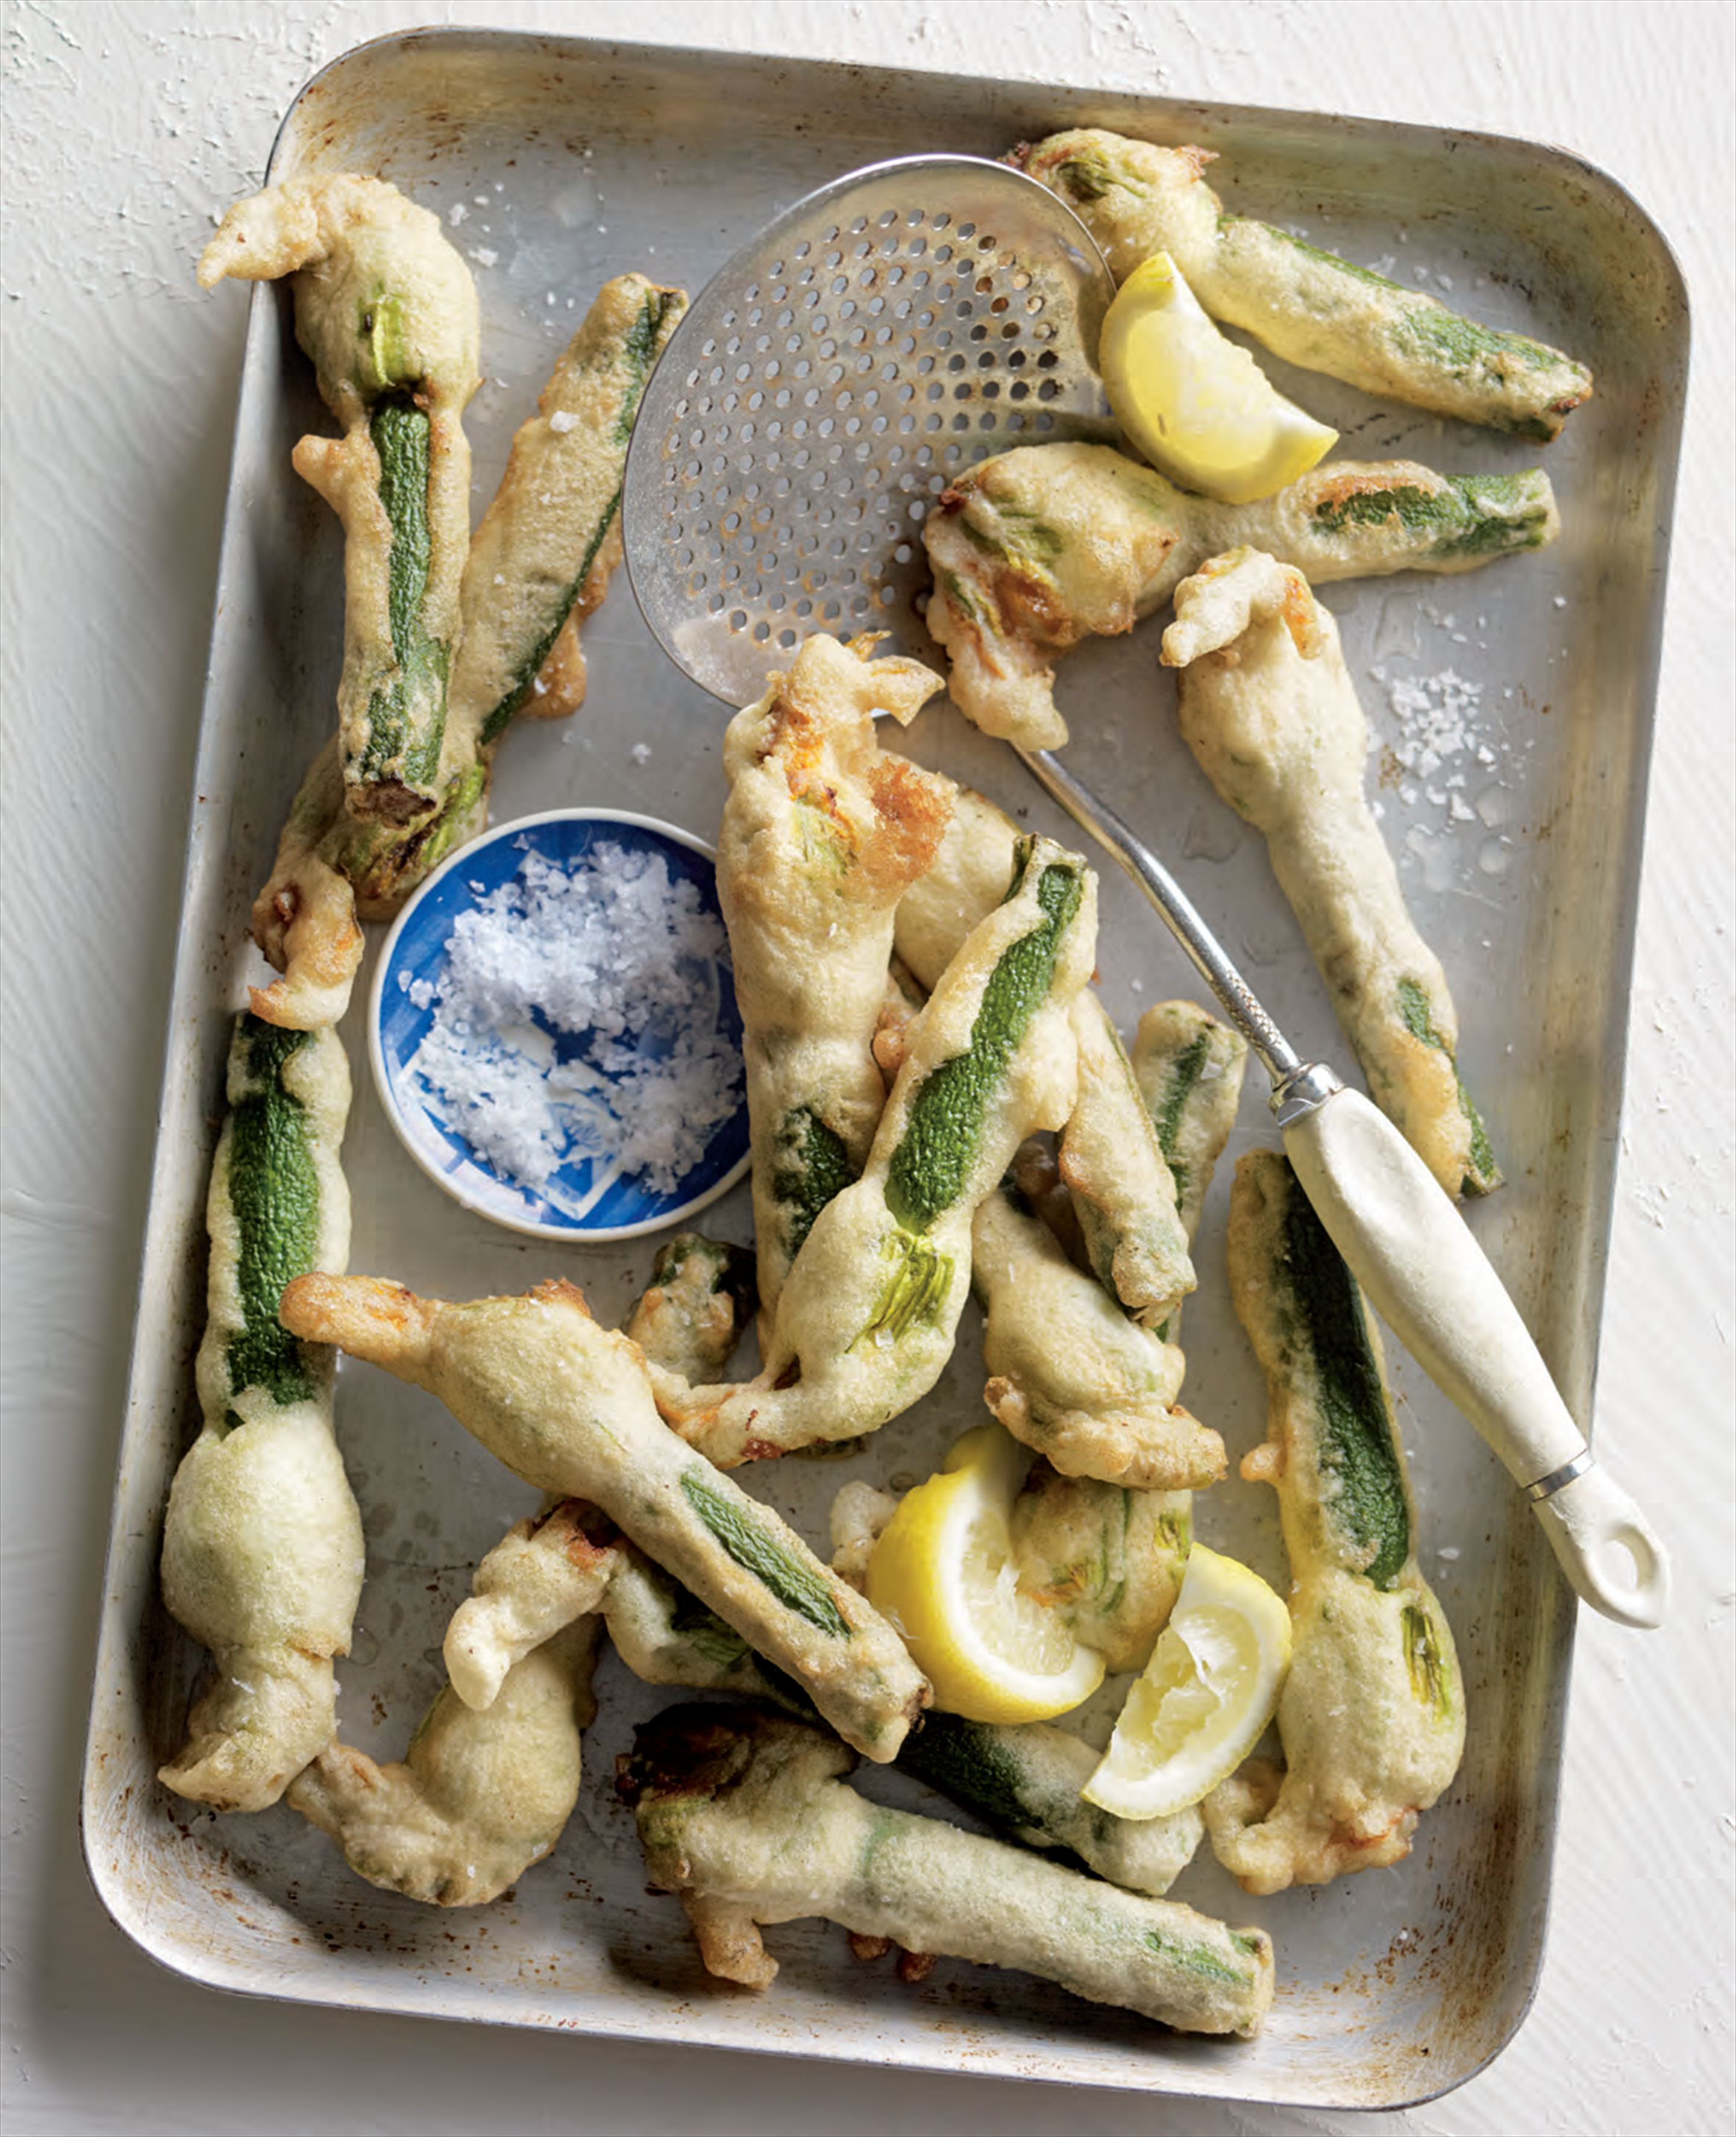 Ouzo-battered zucchini flowers stuffed with goat's curd